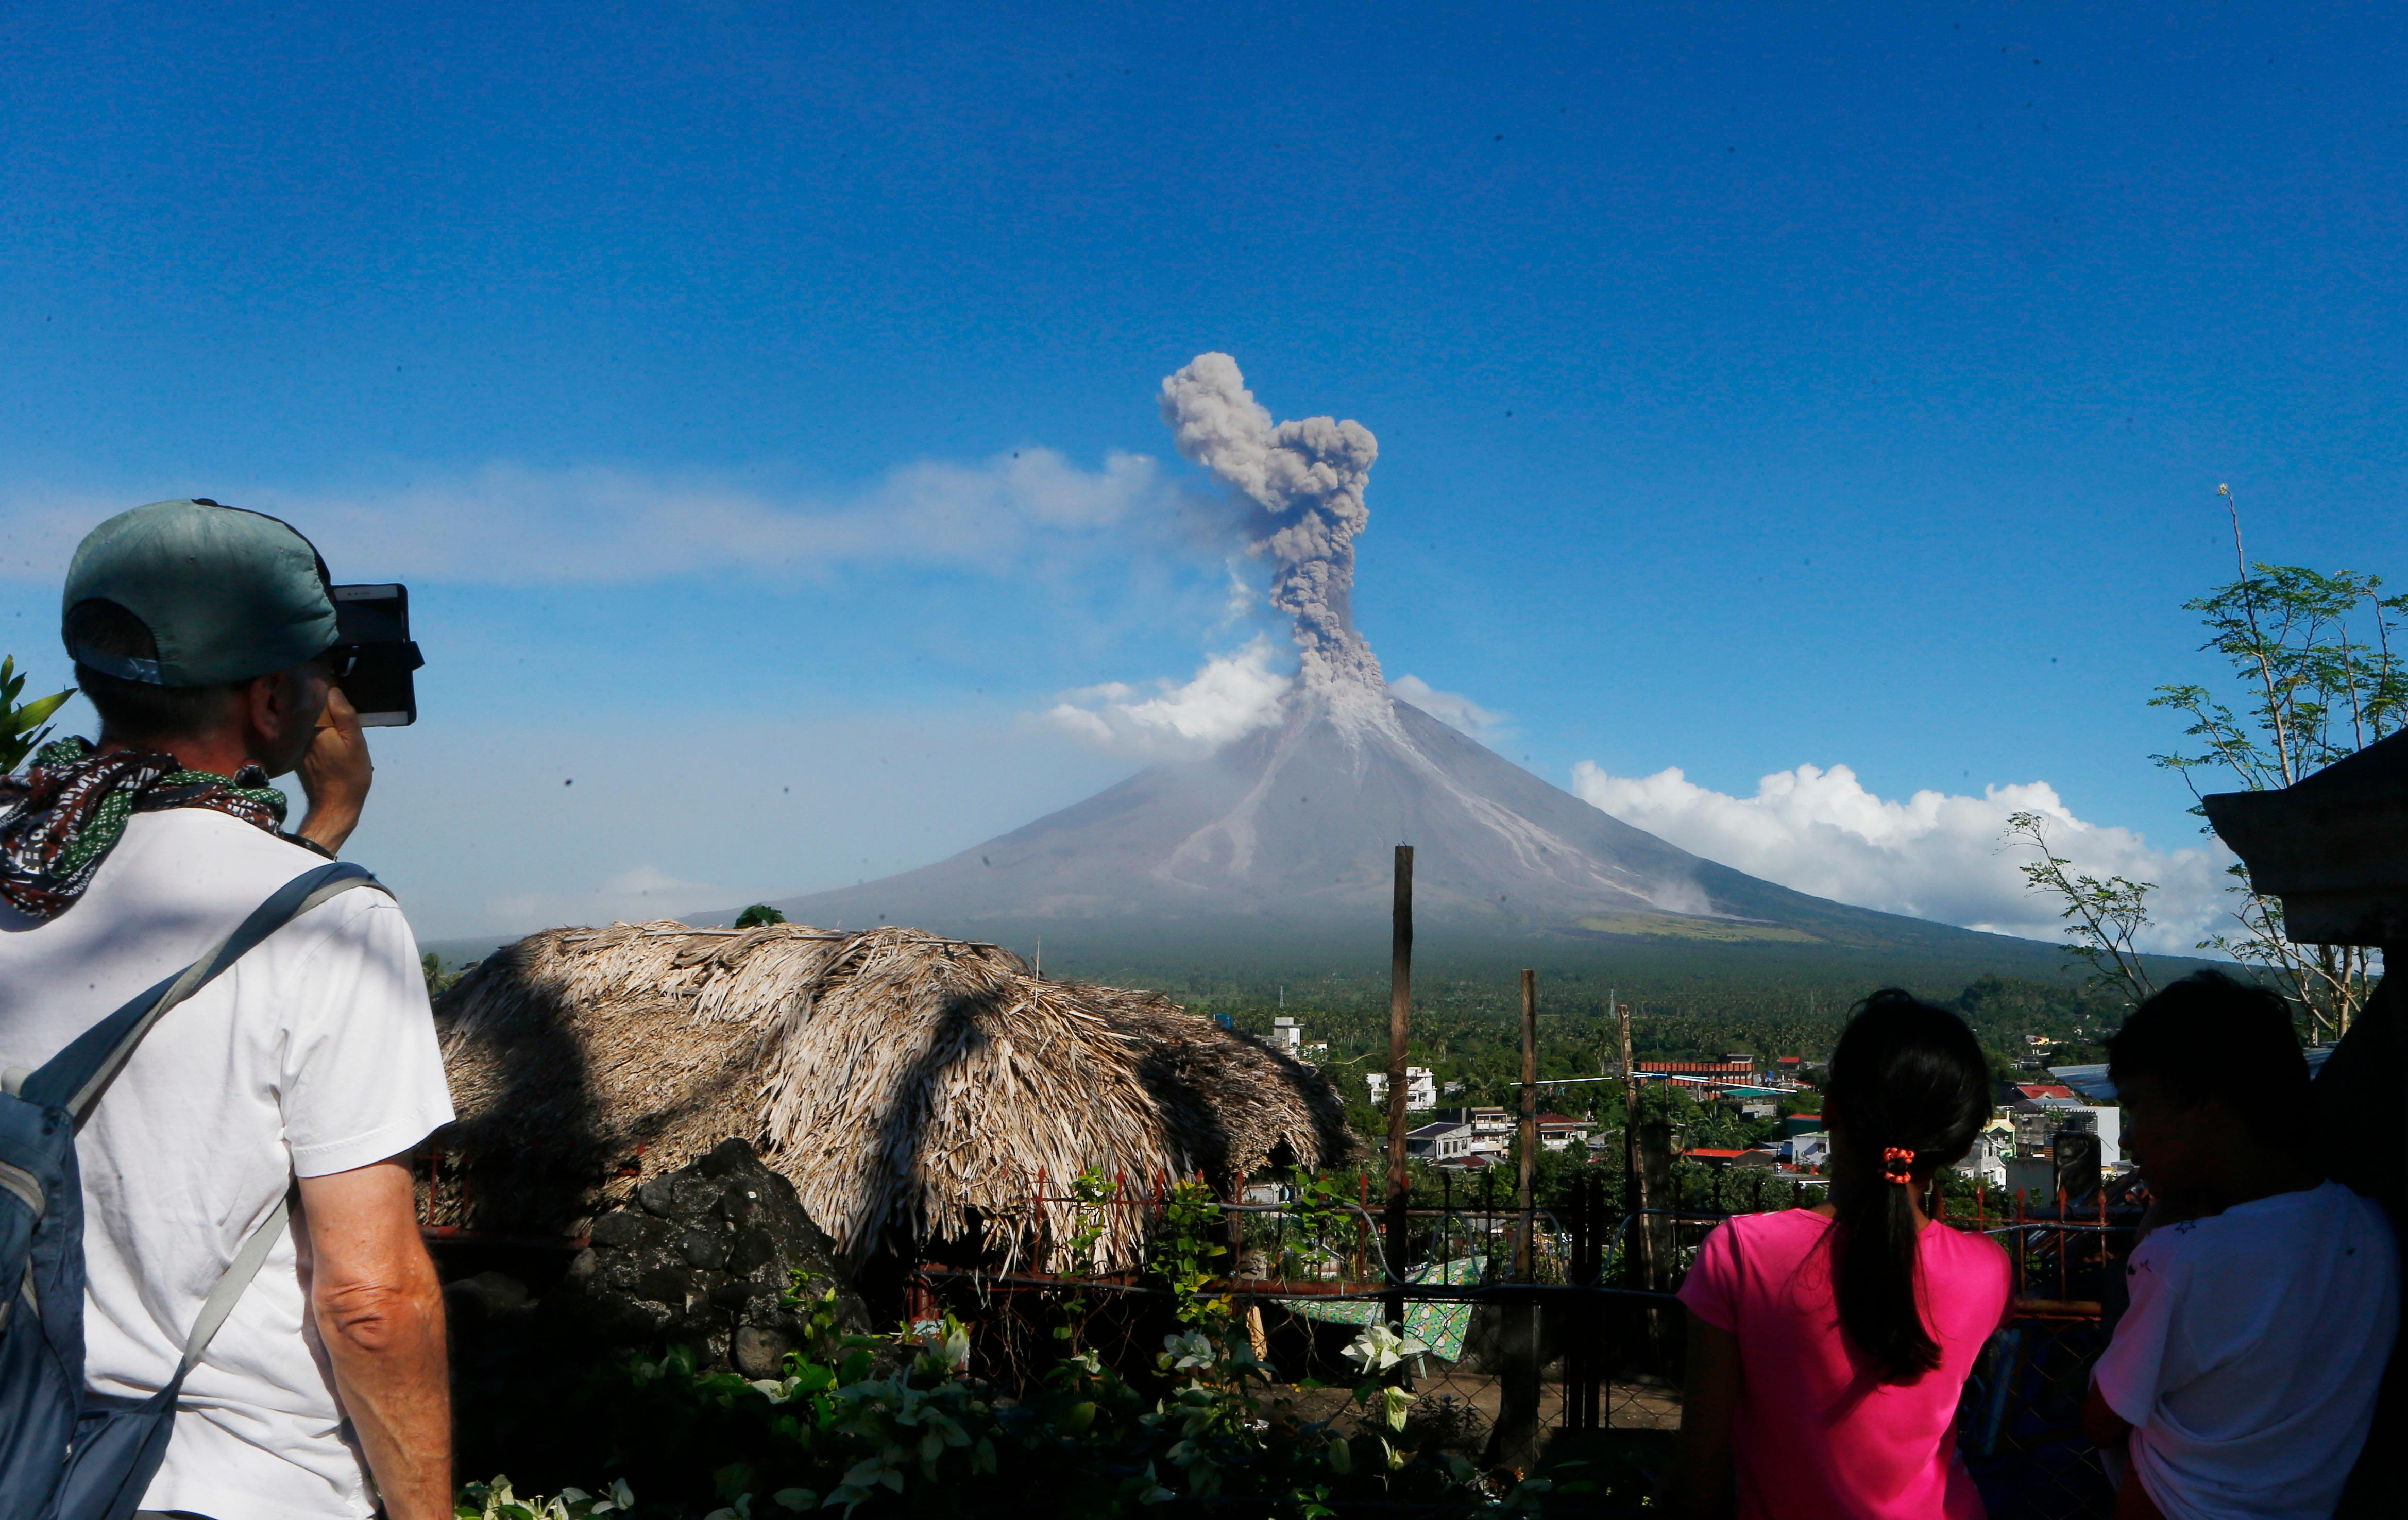 A foreign tourist, left, takes photos of an erupting Mayon volcano Tuesday, Jan. 23, 2018 as seen from Legazpi city, Albay province, southeast of Manila, Philippines. The Philippines' most active volcano ejected a huge column of lava fragments, ash and smoke in another thunderous explosion at dawn Tuesday, sending thousands of villagers back to evacuation centers and prompting a warning that a violent eruption may be imminent. (AP Photo/Bullit Marquez)